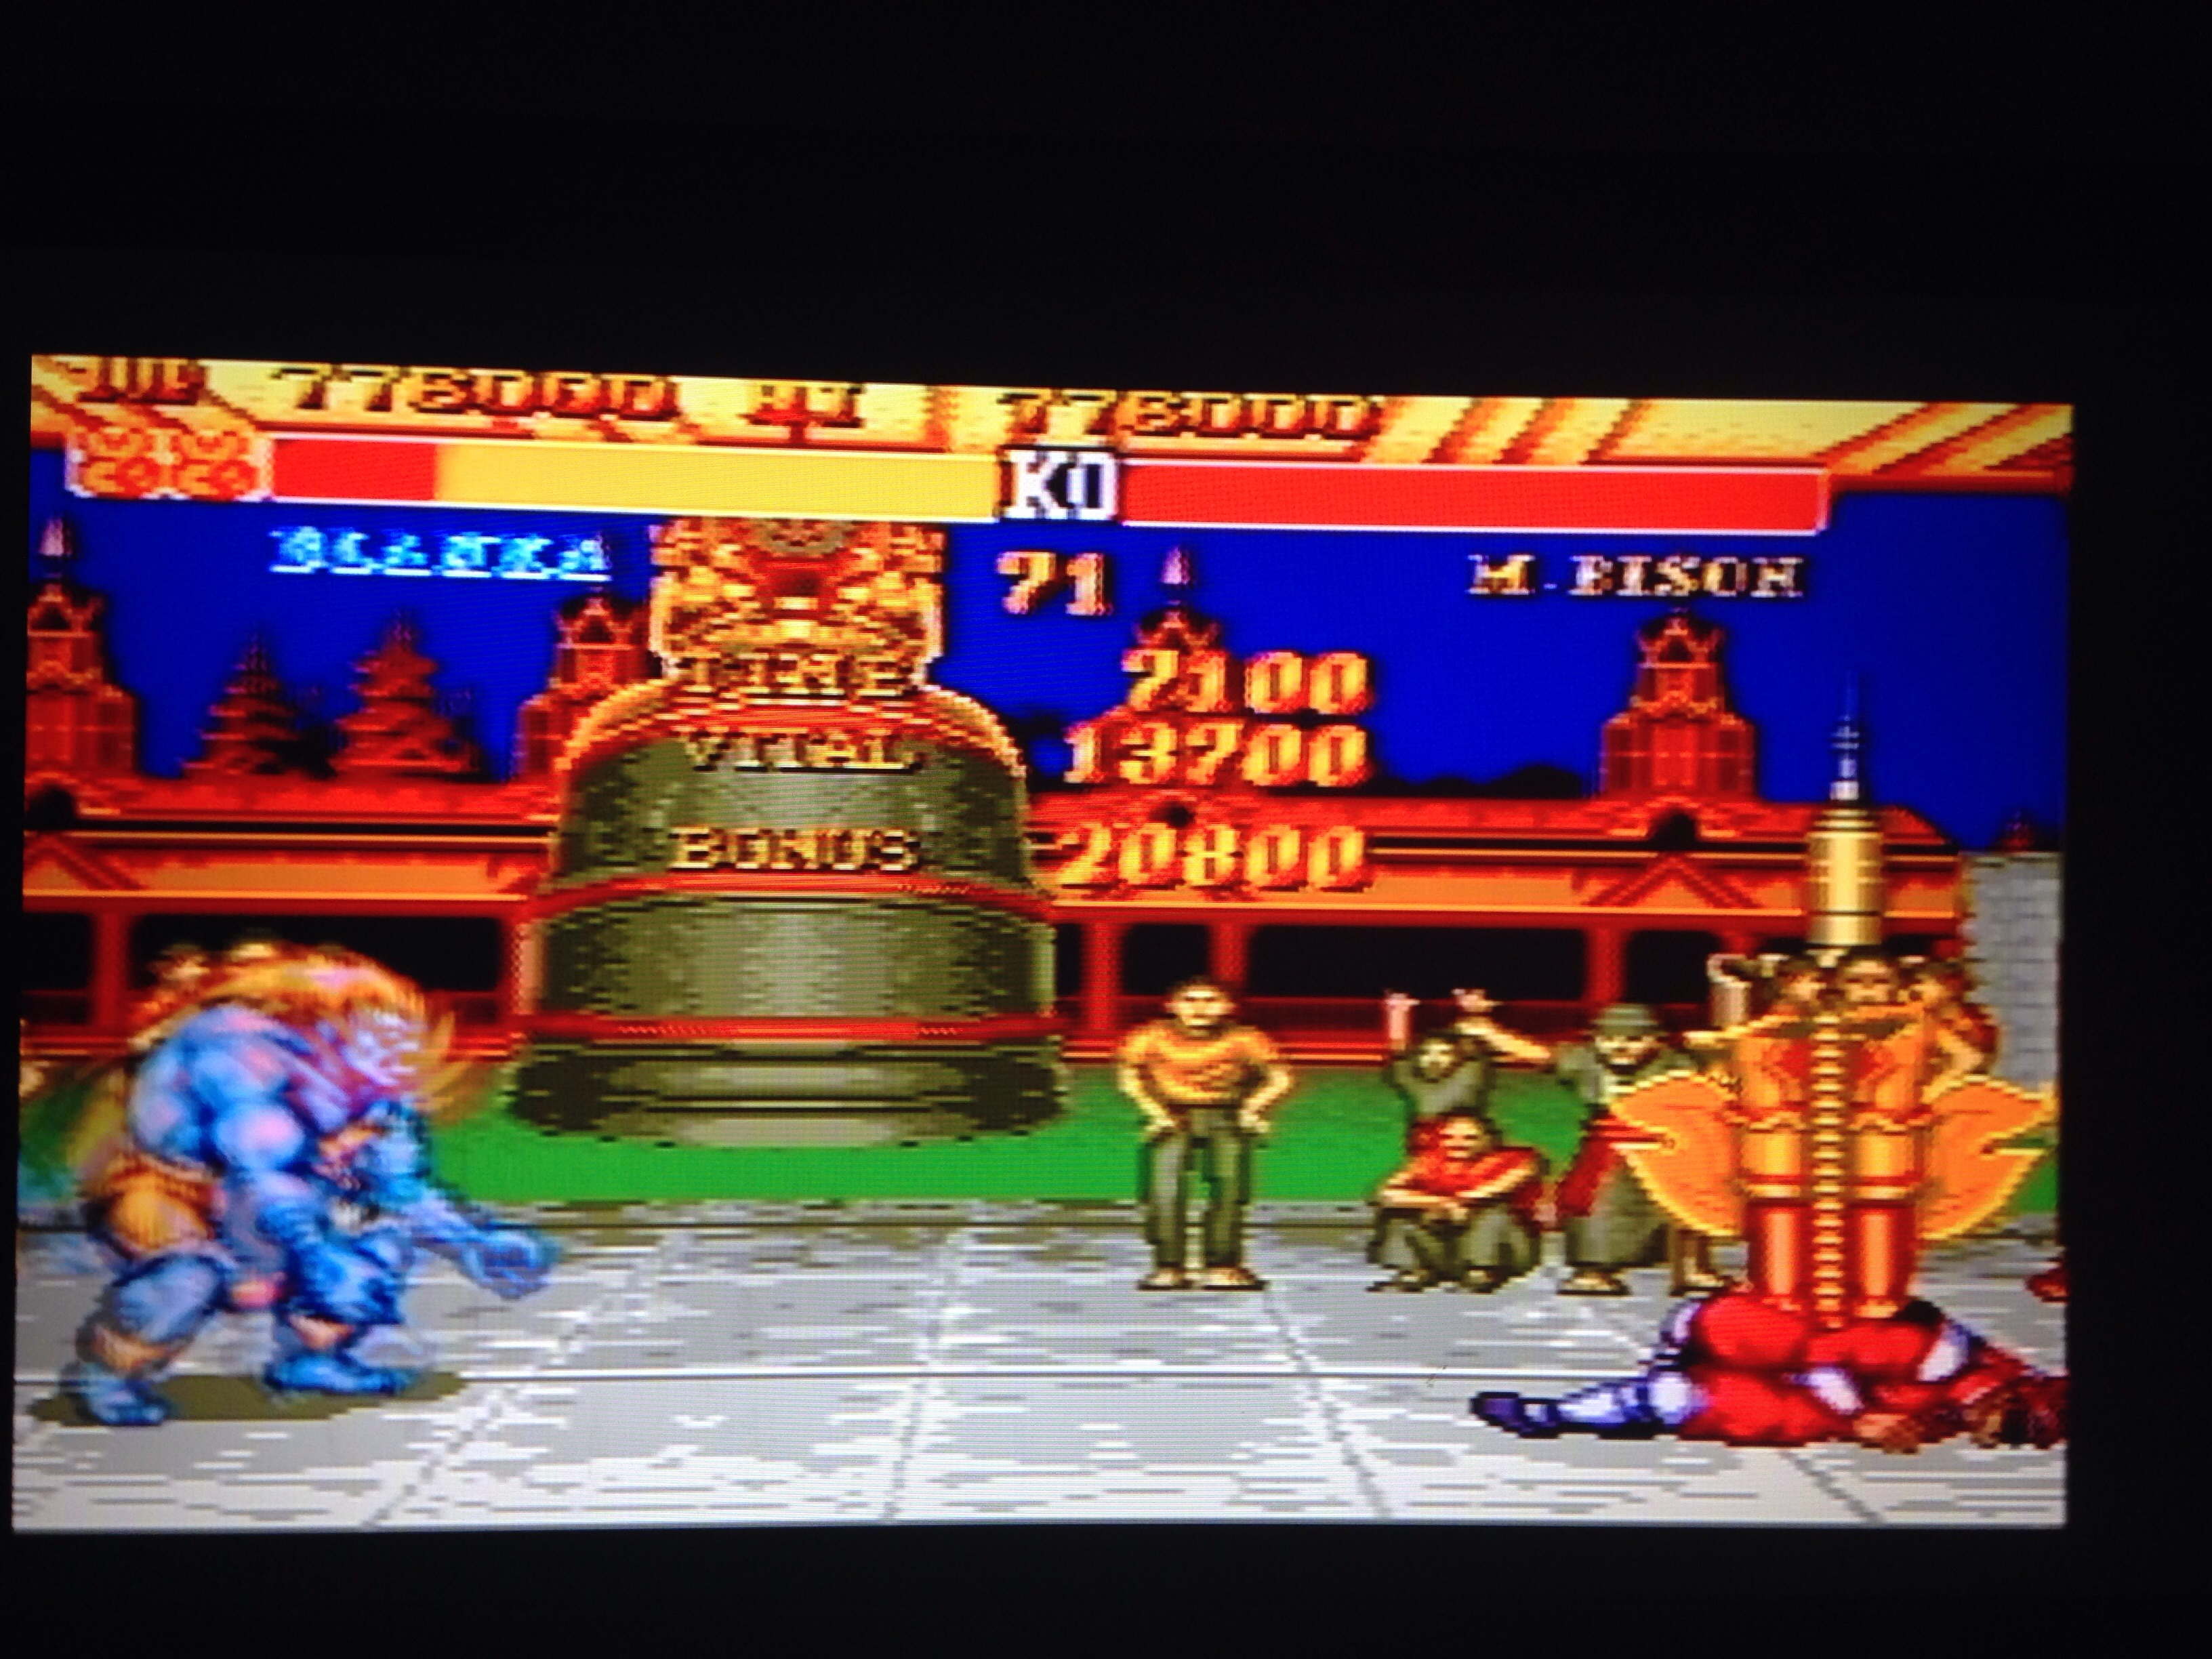 mechafatnick: Street Fighter II (Sega Genesis / MegaDrive) 776,000 points on 2014-11-03 00:55:23